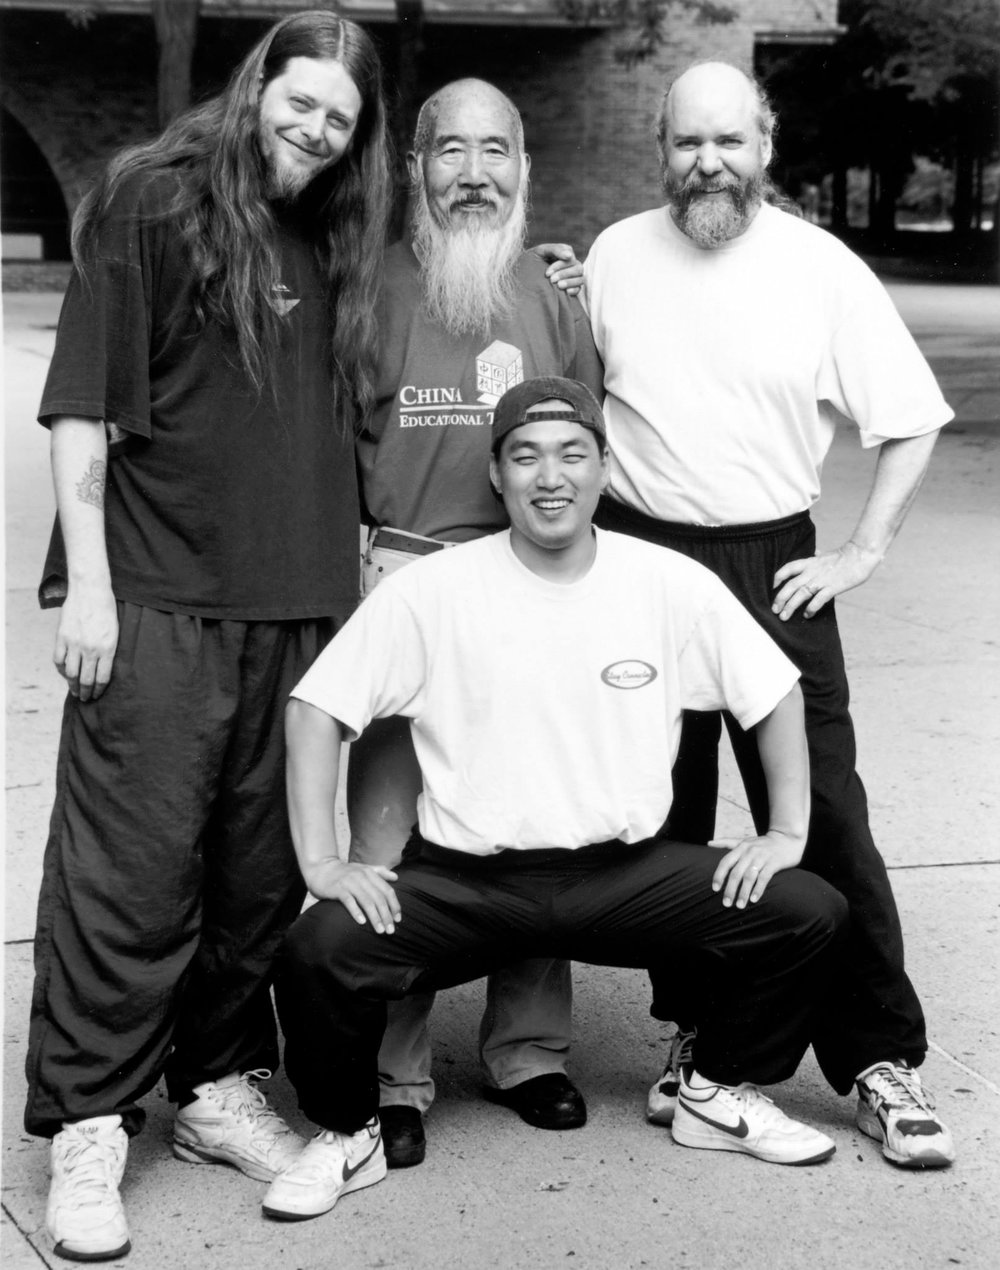 Master Gabriel Chin, with Master Kim, Grandfather Jeff Noftz (lineage elder) and another student of Master Chin